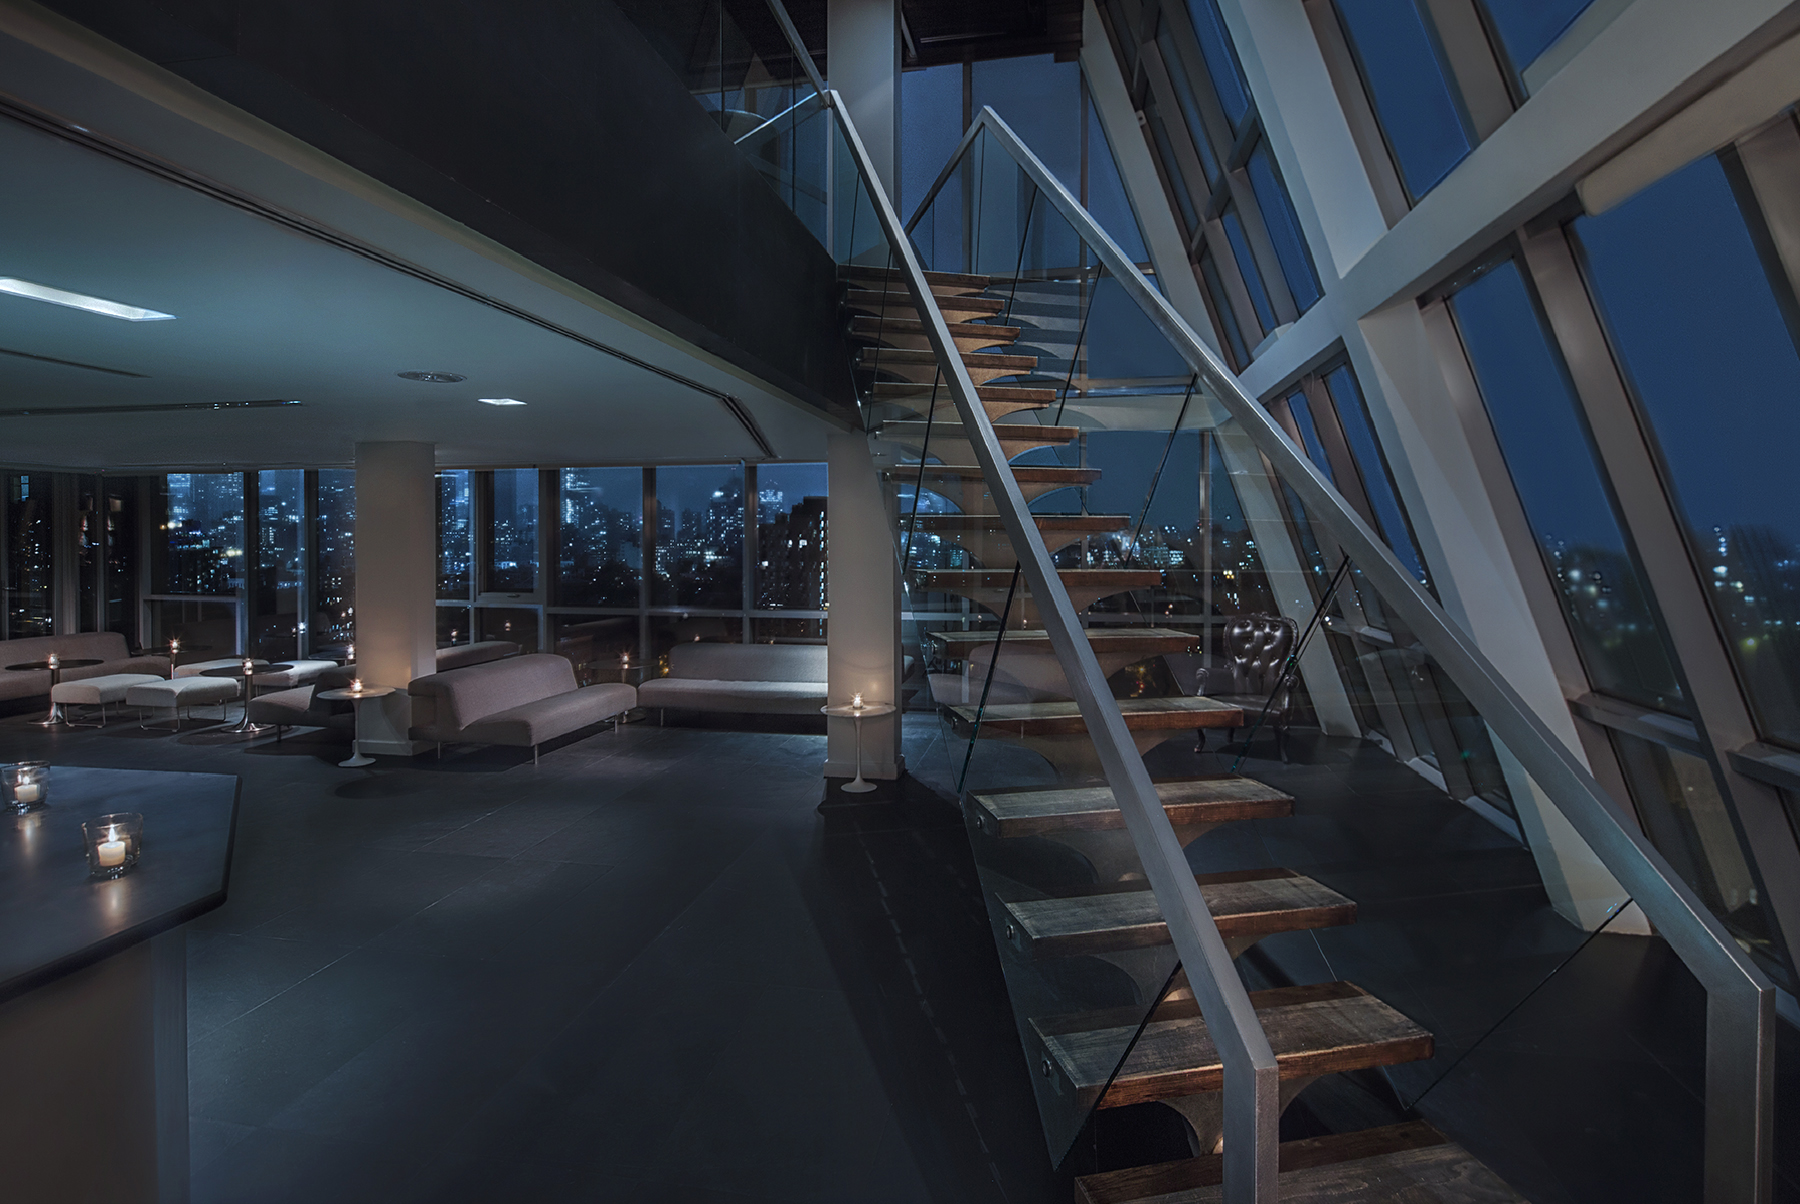 Penthouse event space at Hotel on Rivington in New York City, NYC, NY/NJ Area